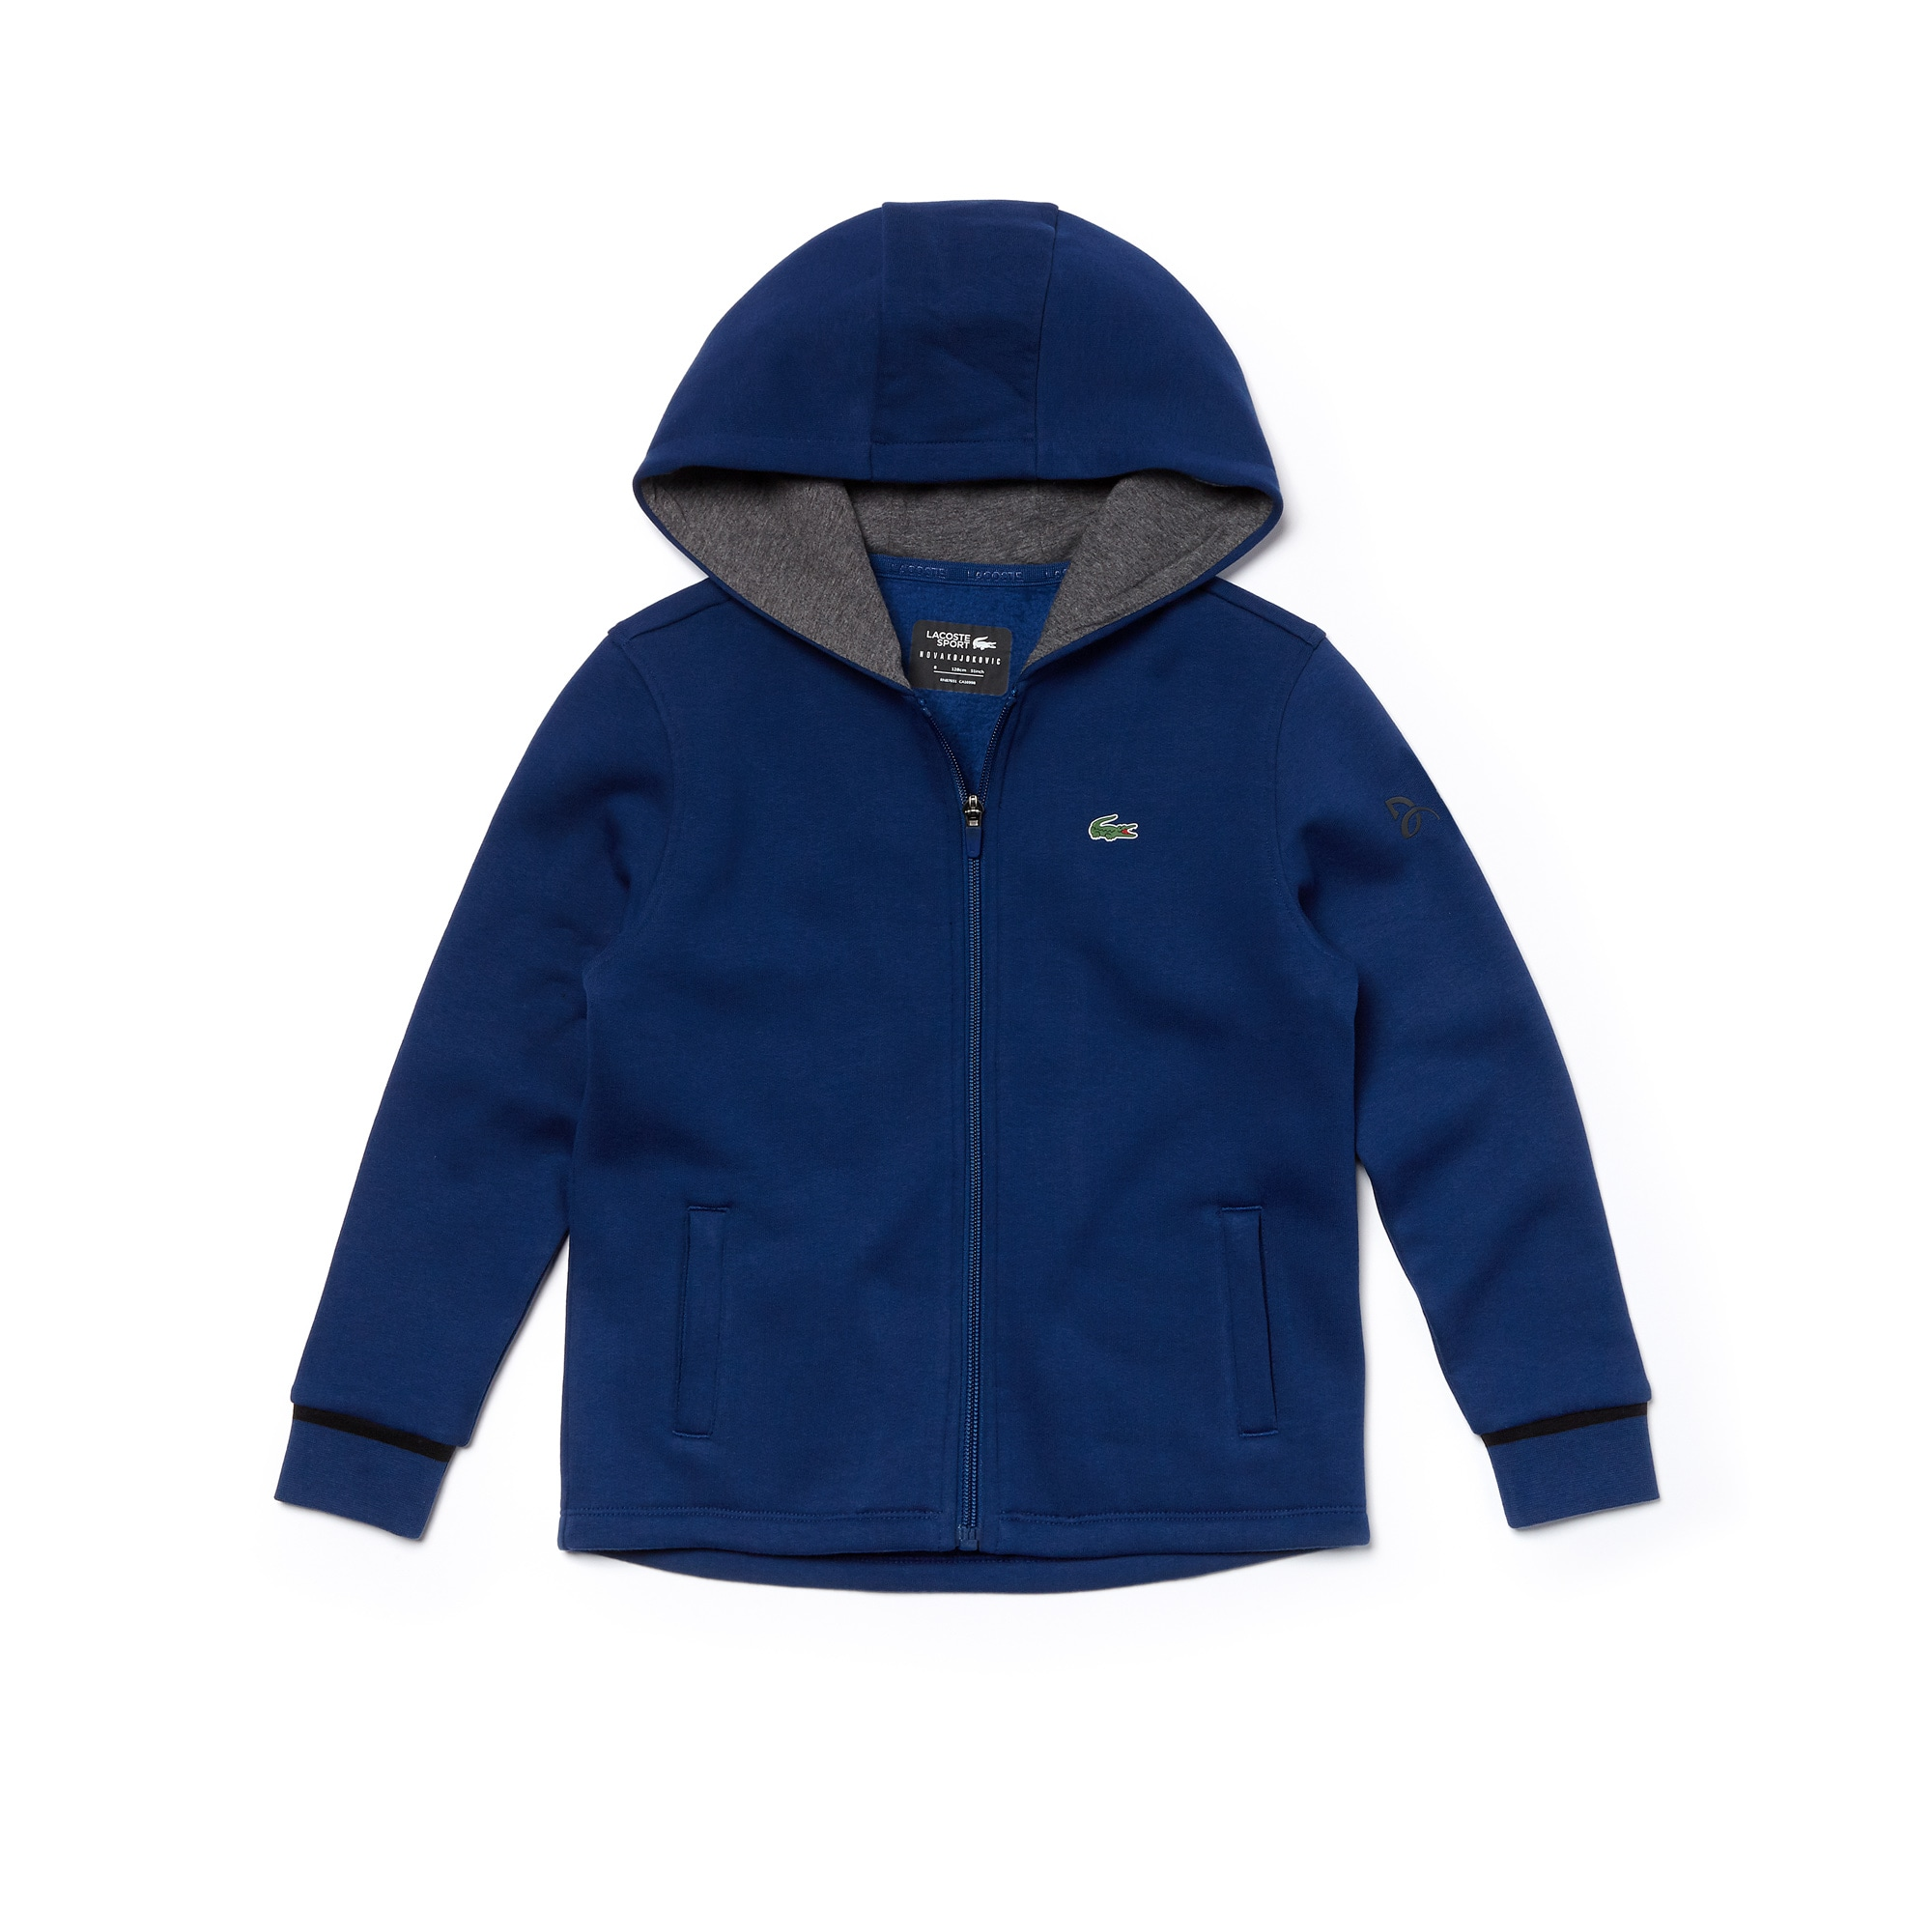 Boys' Lacoste SPORT NOVAK DJOKOVIC SUPPORT WITH STYLE COLLECTION Hooded Fleece Sweatshirt